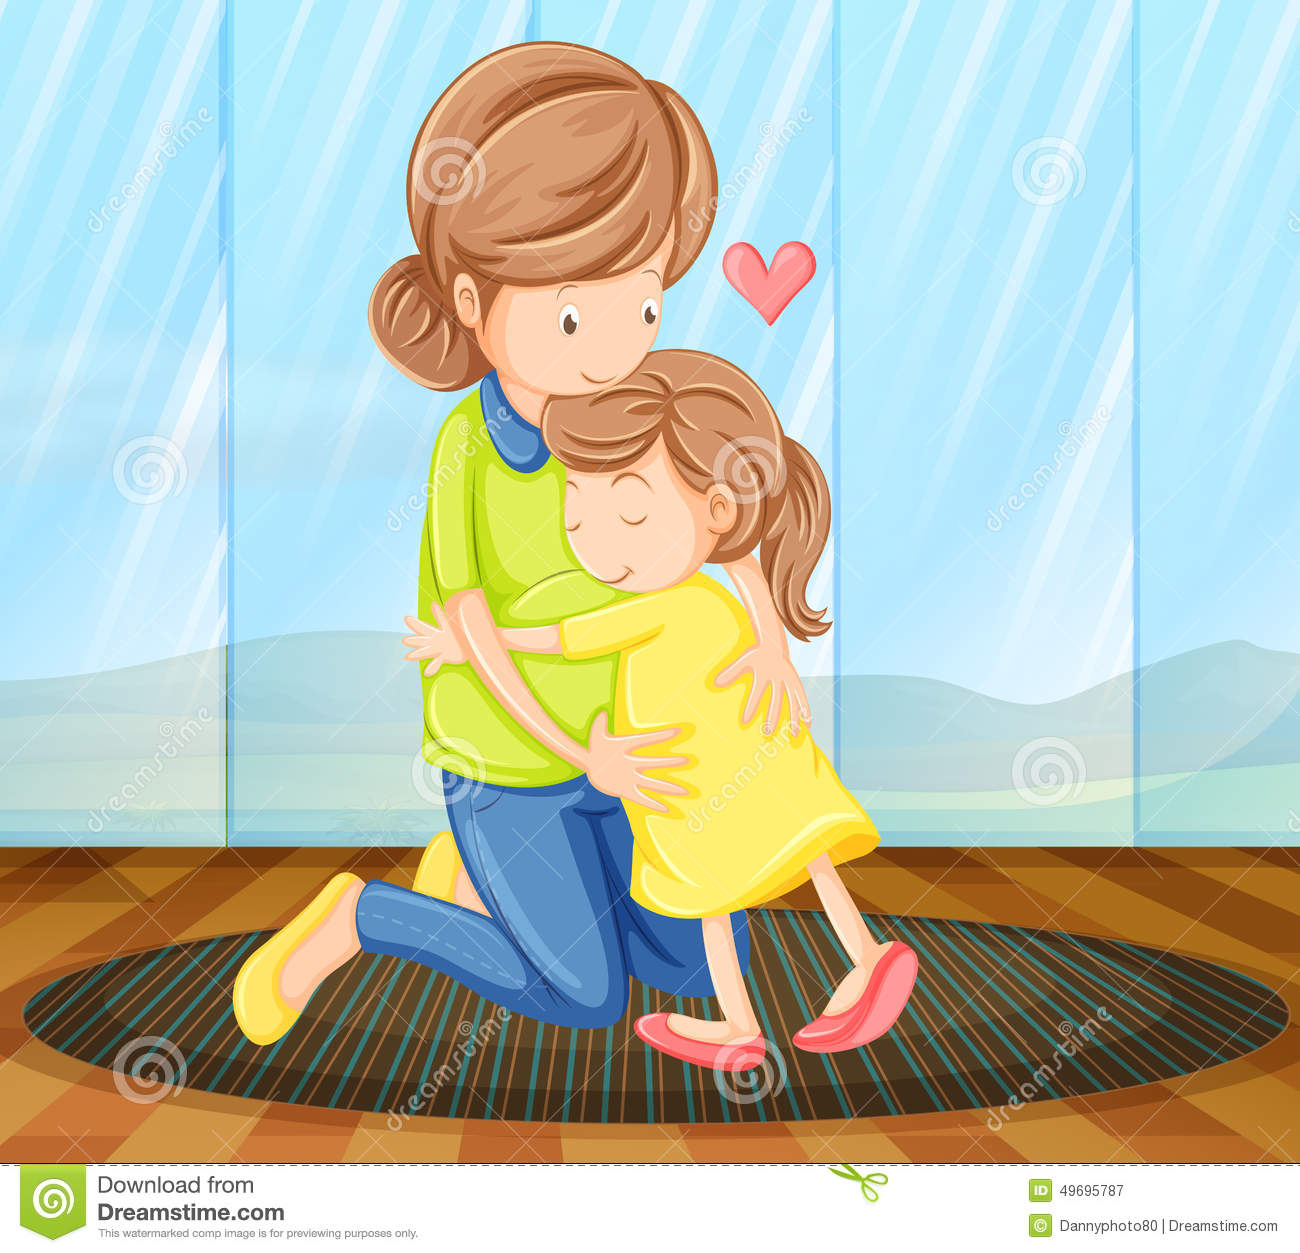 Stock Illustration Child Hugging Her Mother View Image49695787 on 16 X 20 Floor Plans